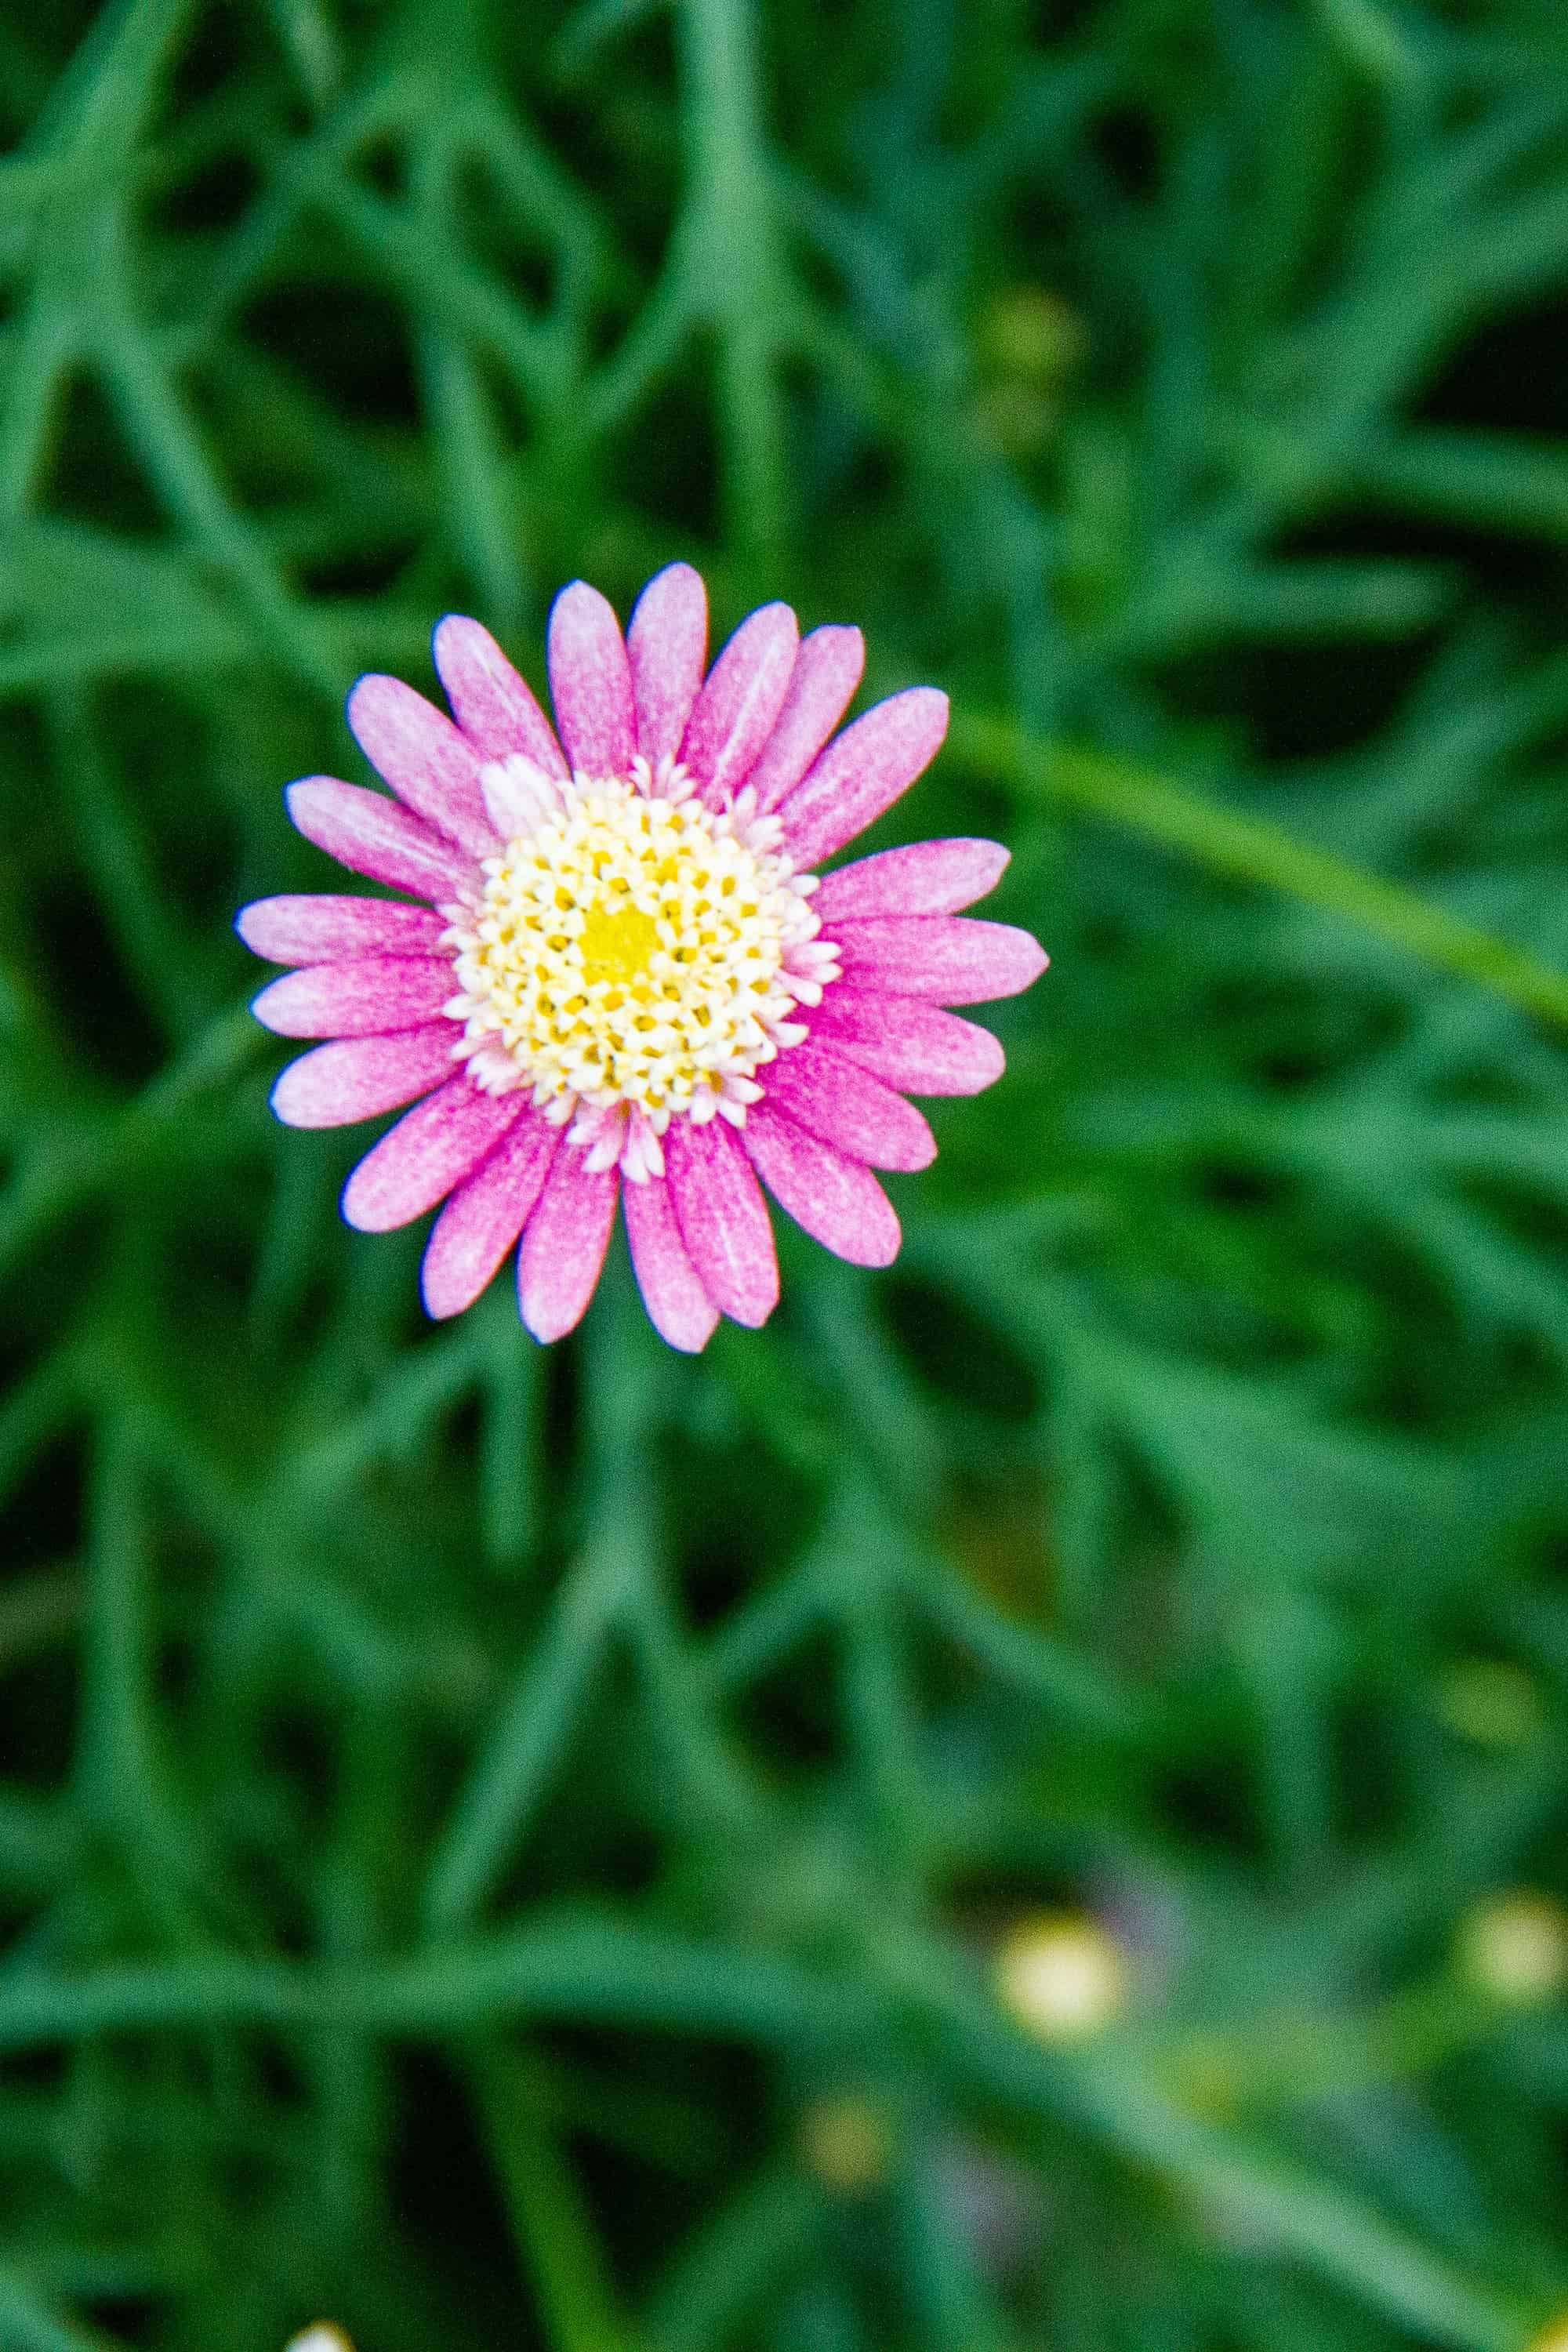 Pink flower with green leaves in the background for nature summer bucket list ideas